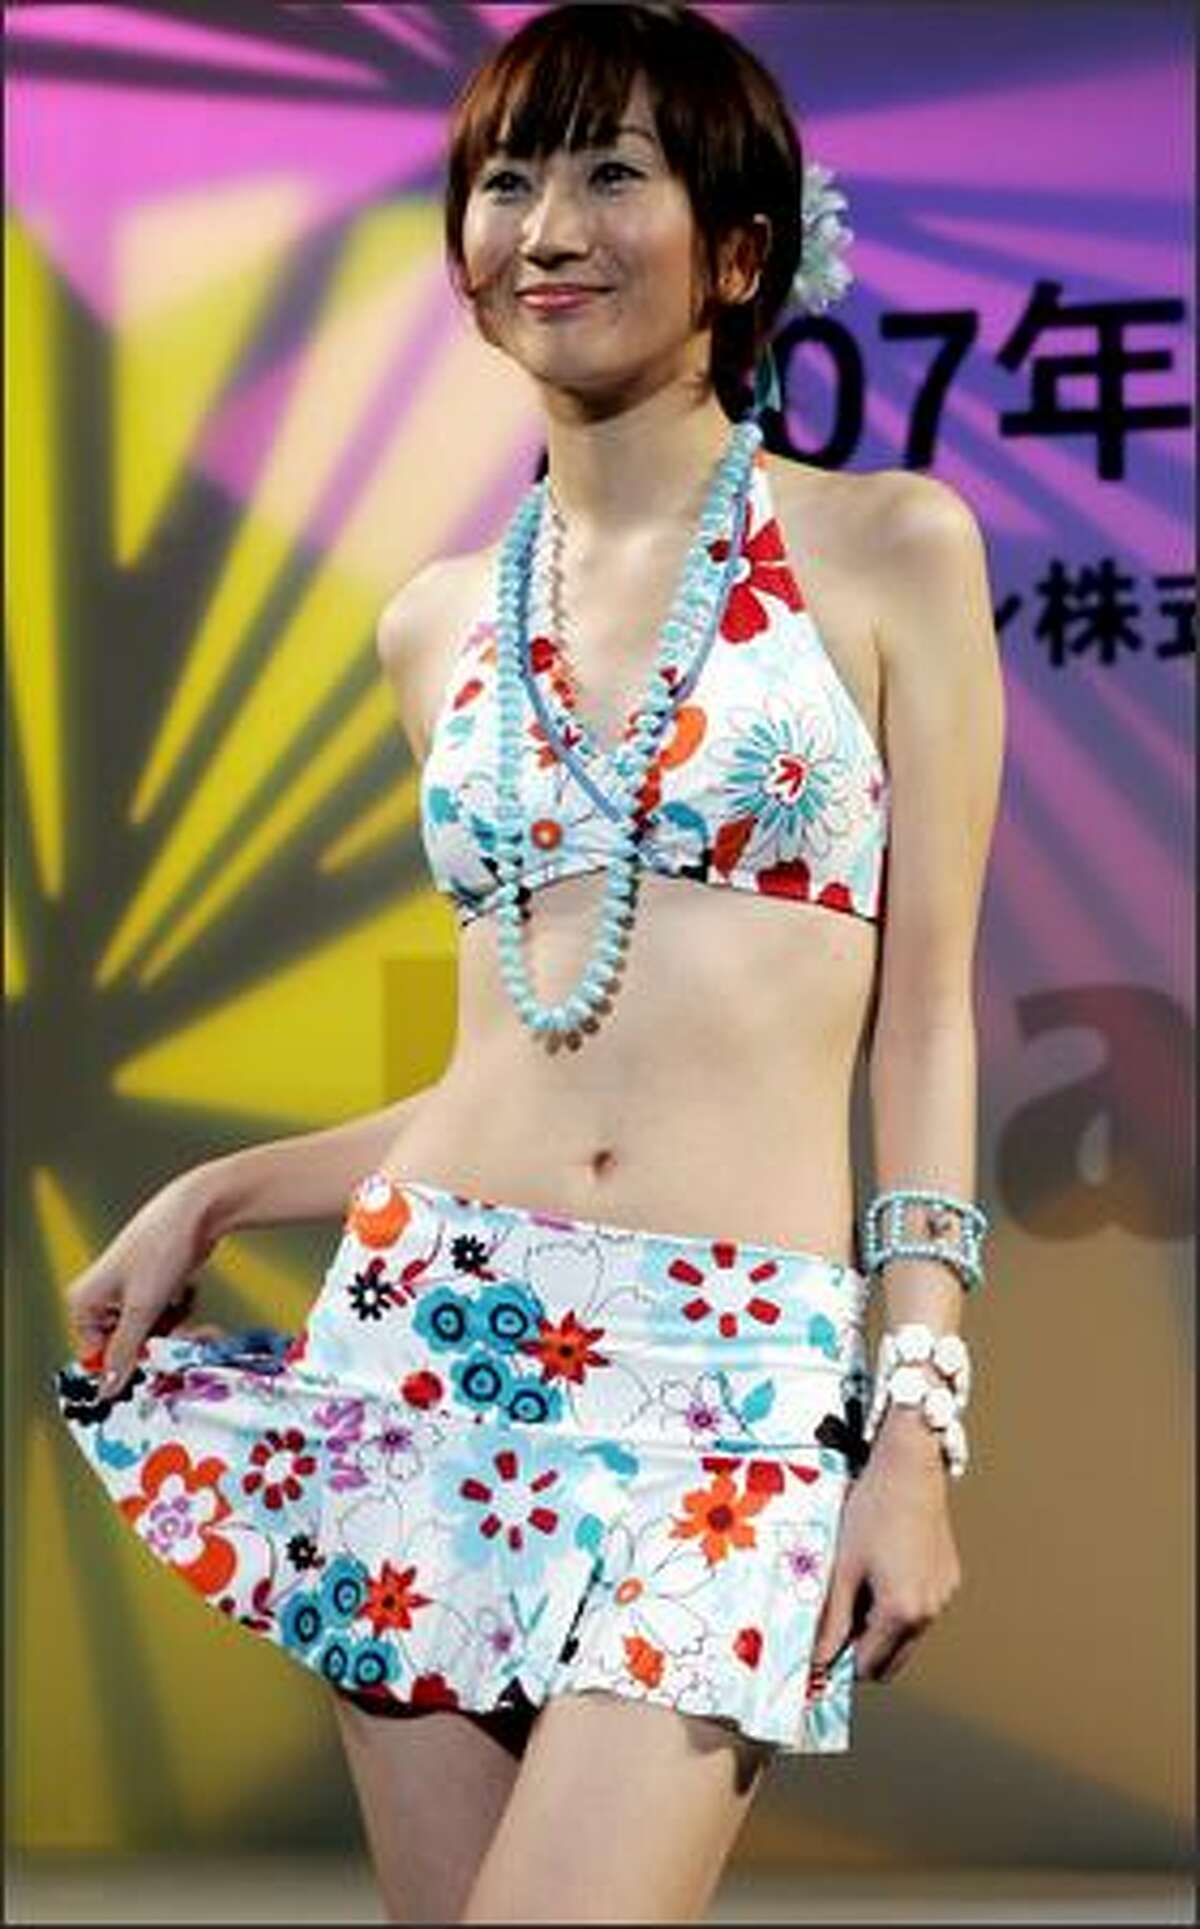 A model smiles in separates during the 2007 swimwear collection presented by Japan's Toray Industries Inc. in Tokyo on Monday. The Tokyo-based materials producer offers this year its latest beachwears using the quick-drying, everlasting and sandproof fabric applied by its own cutting-edge nano technology called